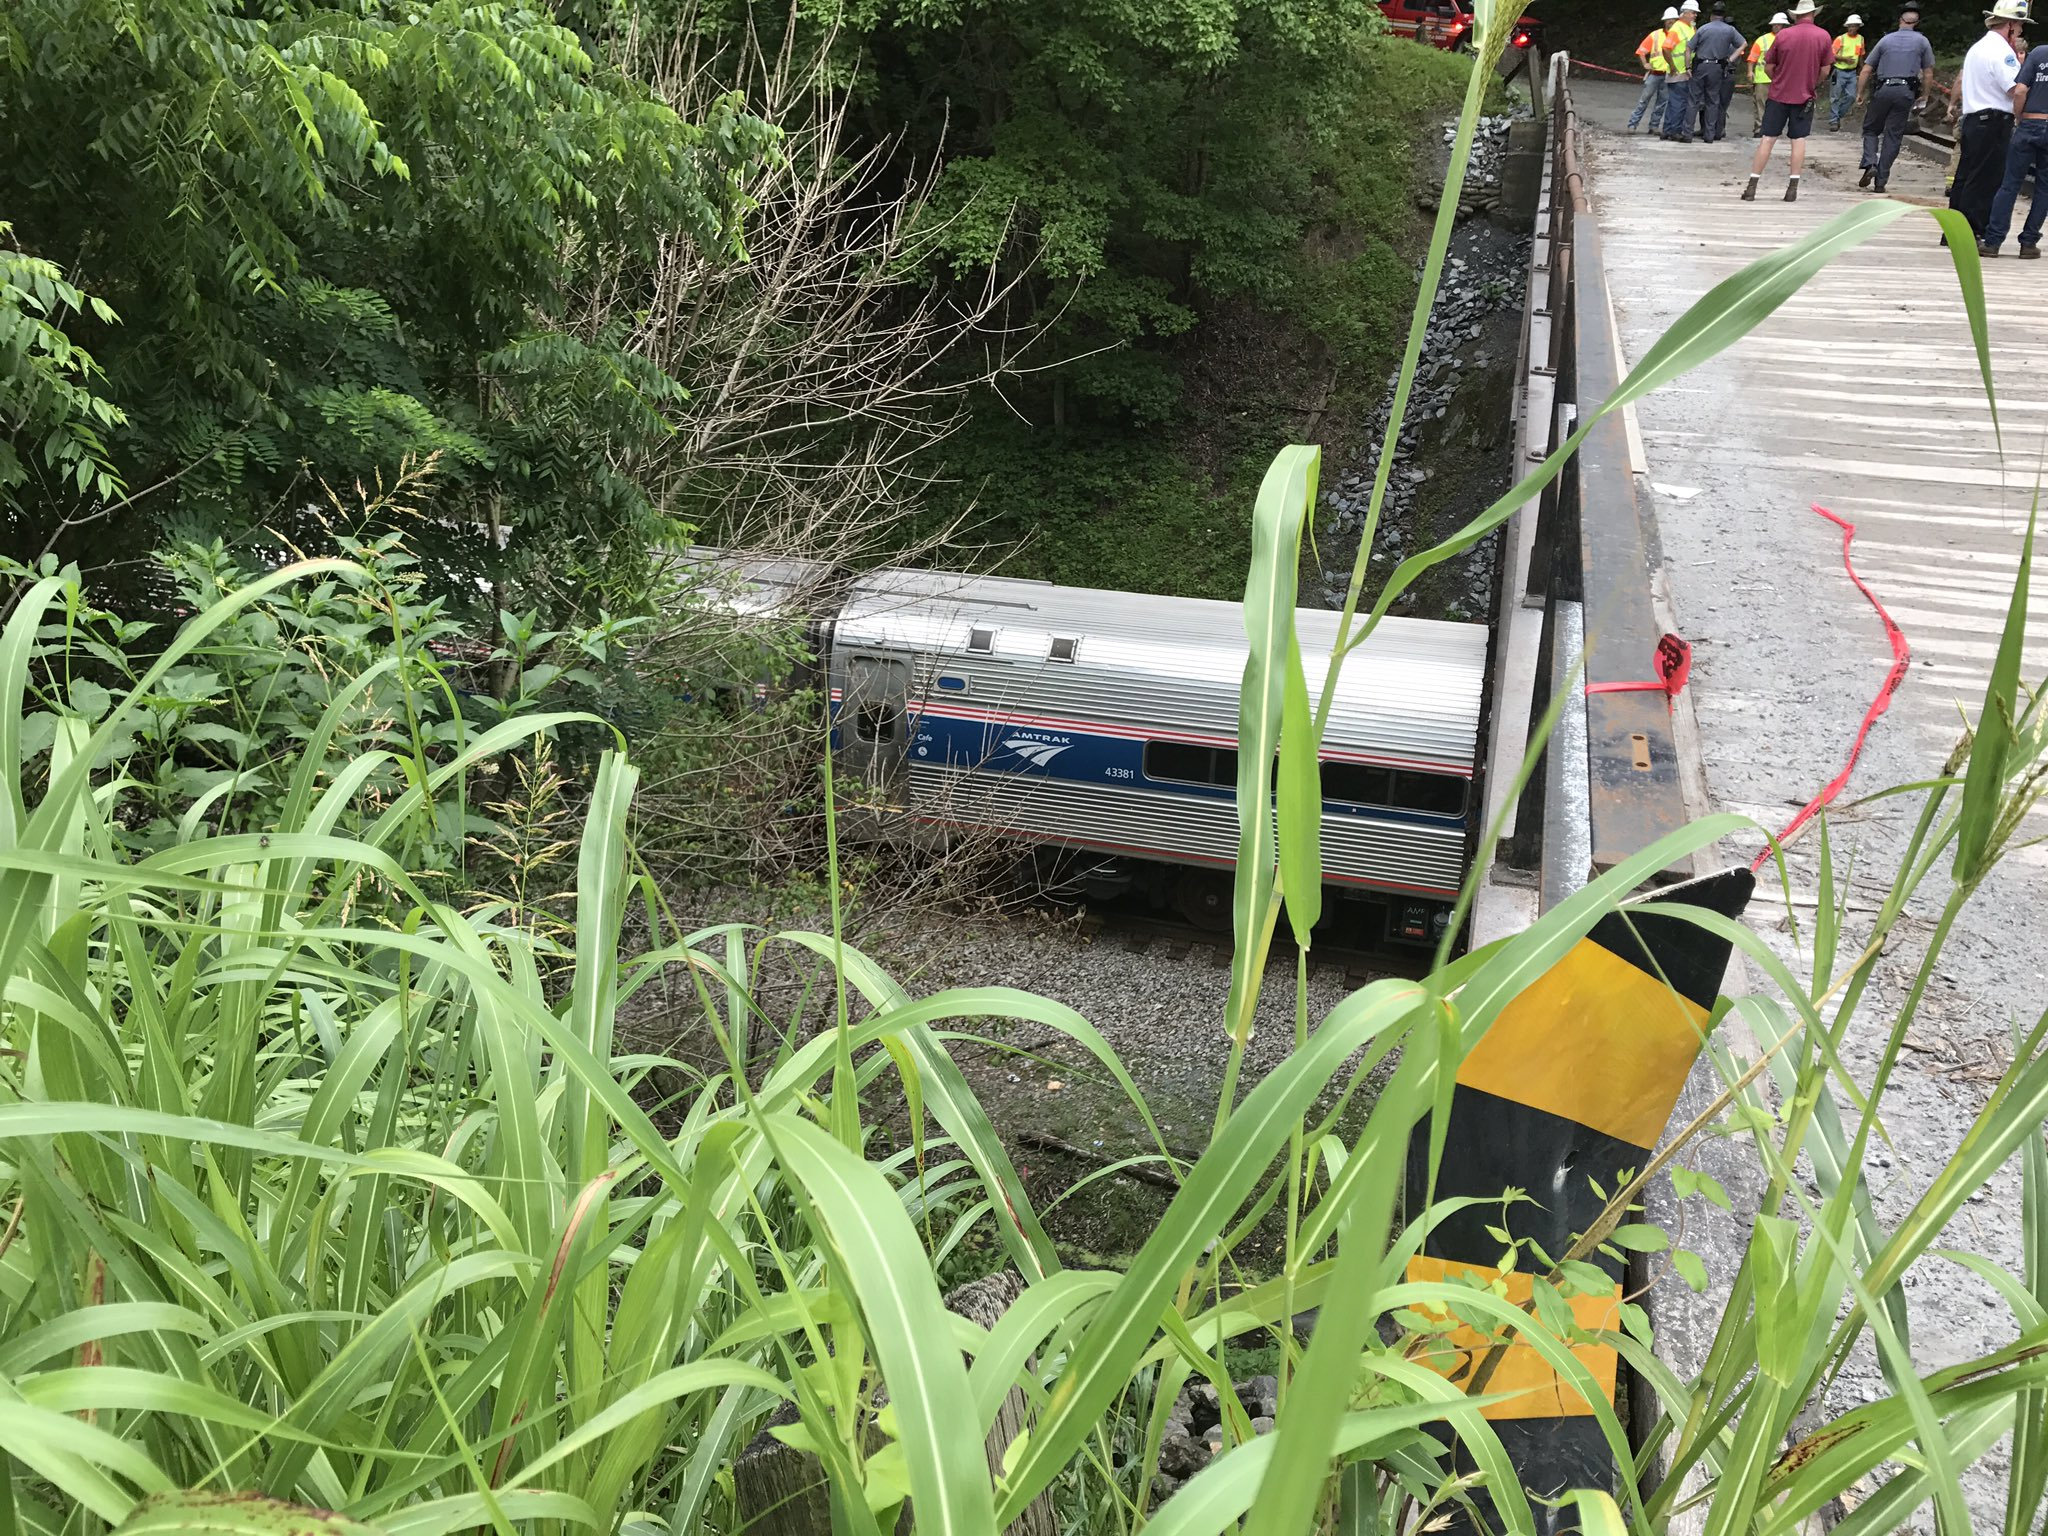 The Amtrak train is still at the scene below the bridge (Photo: Chris Hoffman)